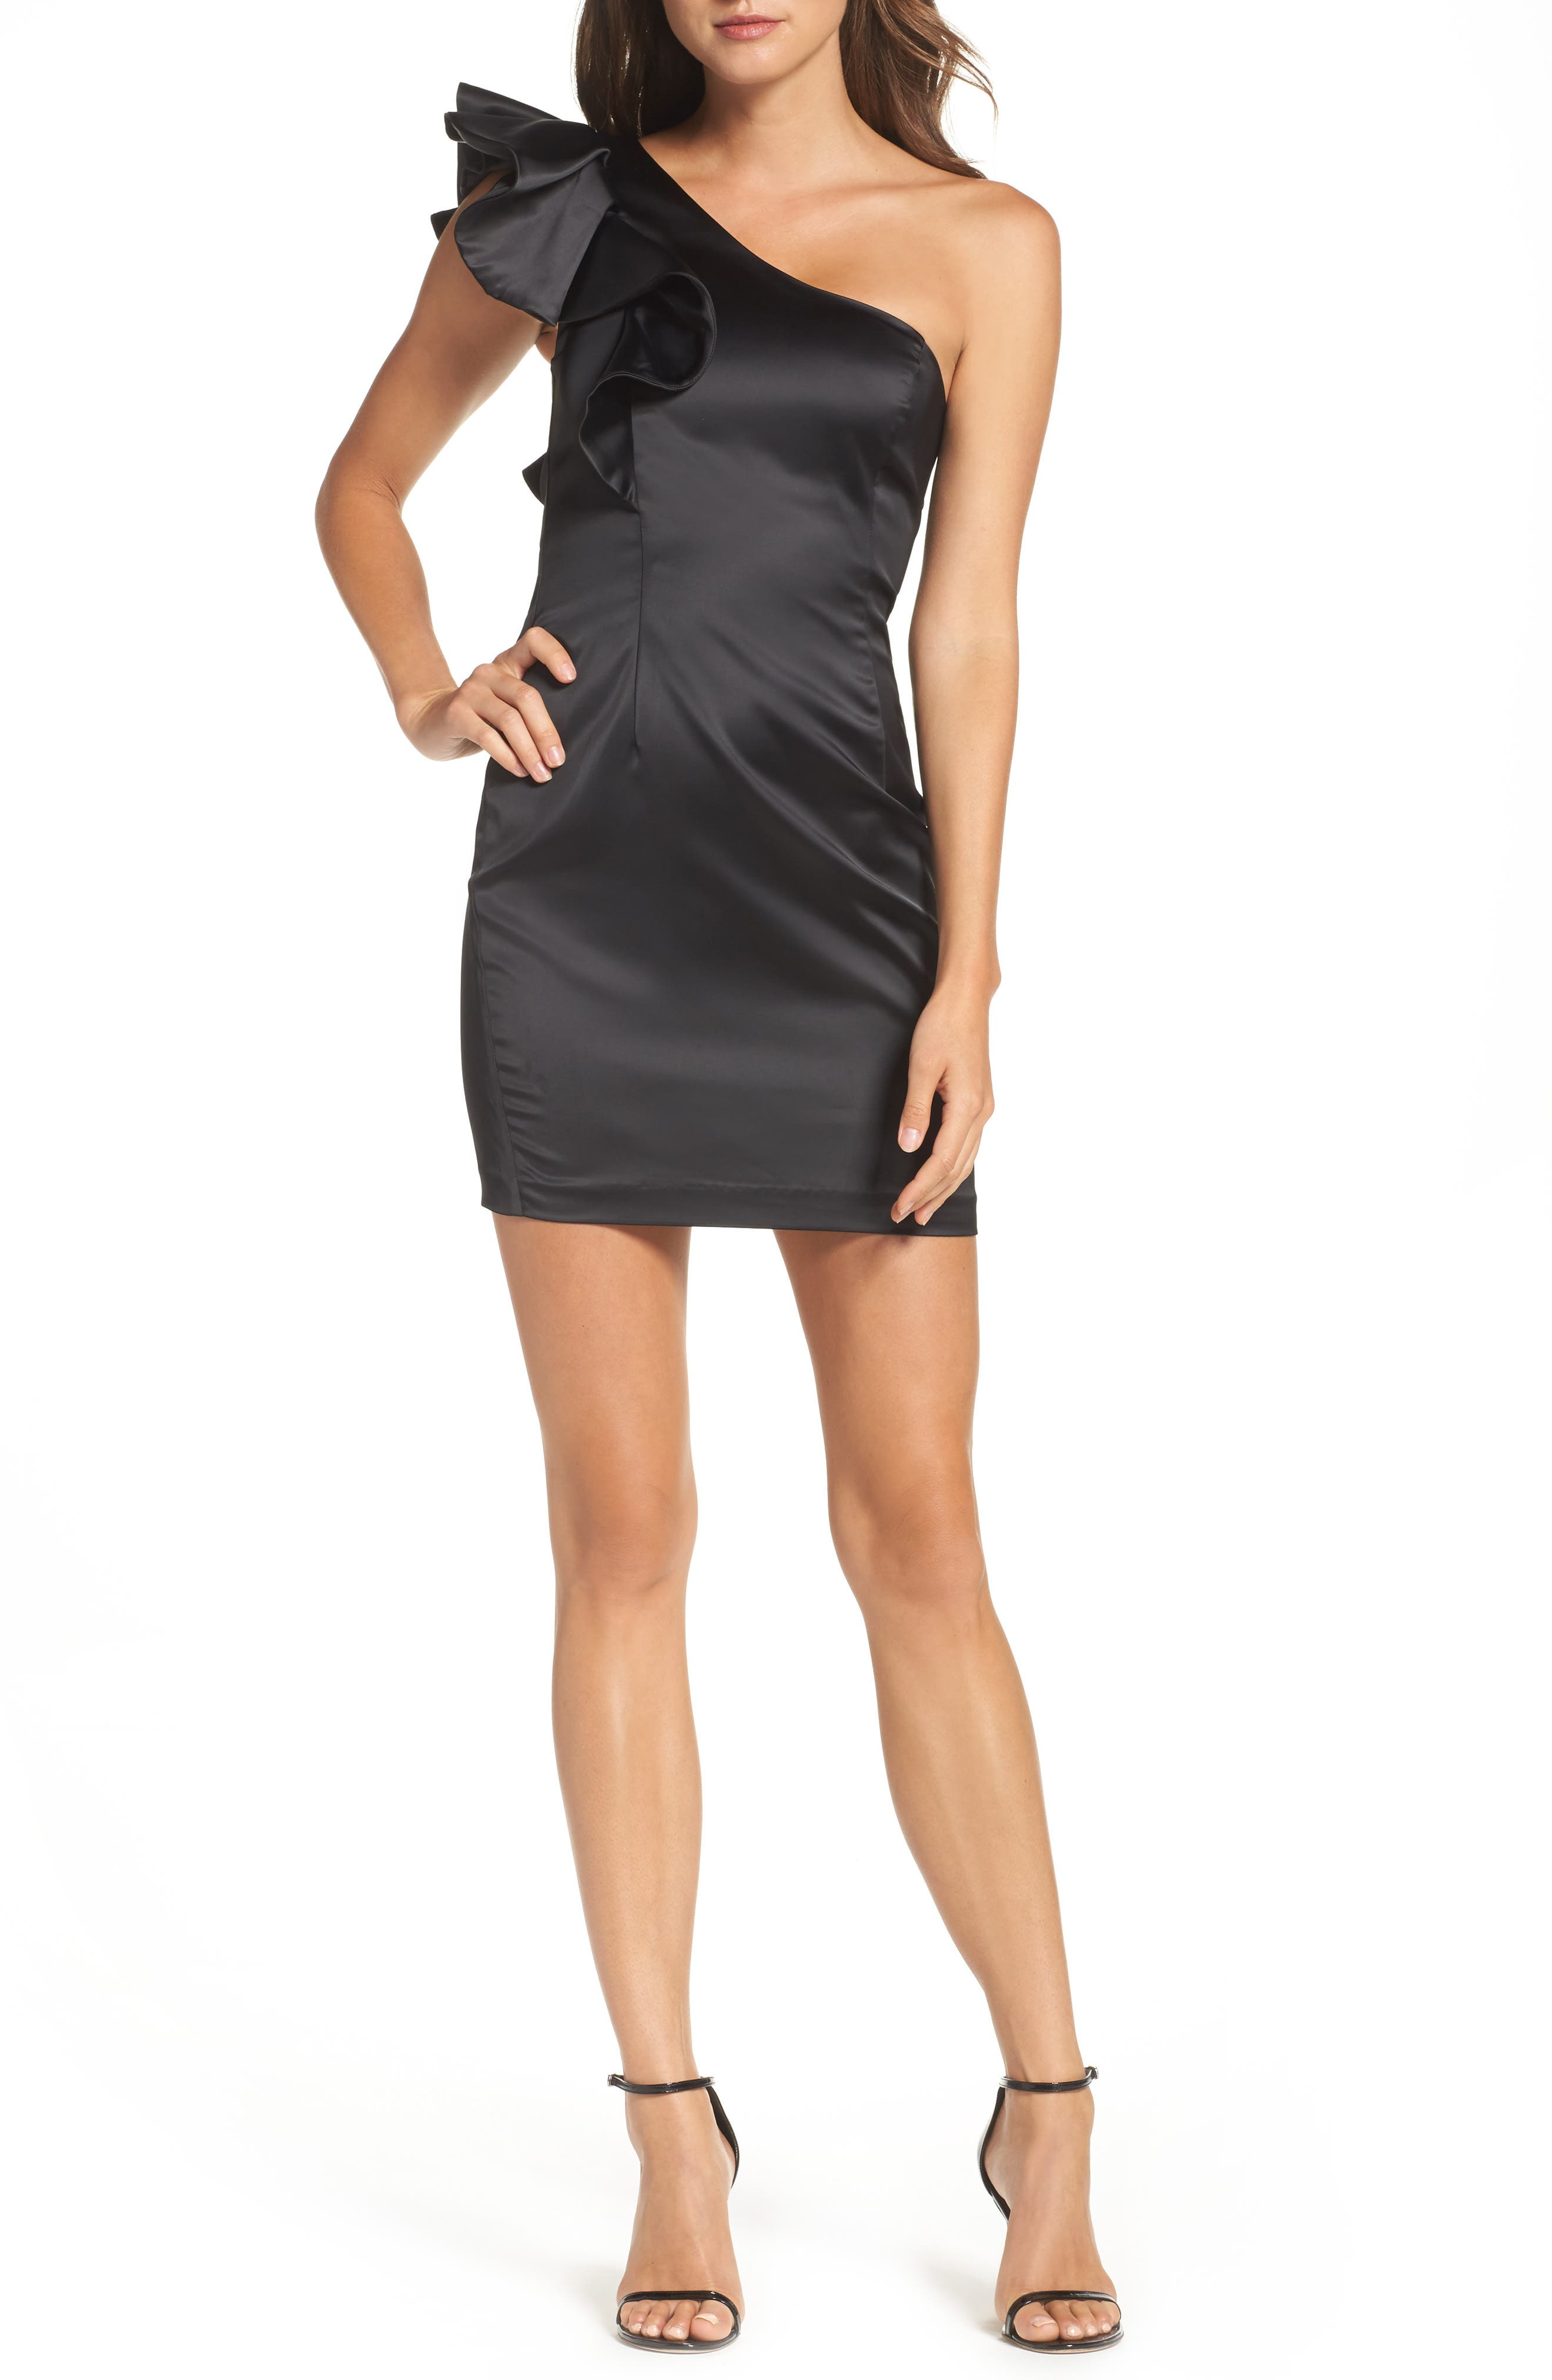 Main Image - Bardot Estella Frill One-Shoulder Minidress